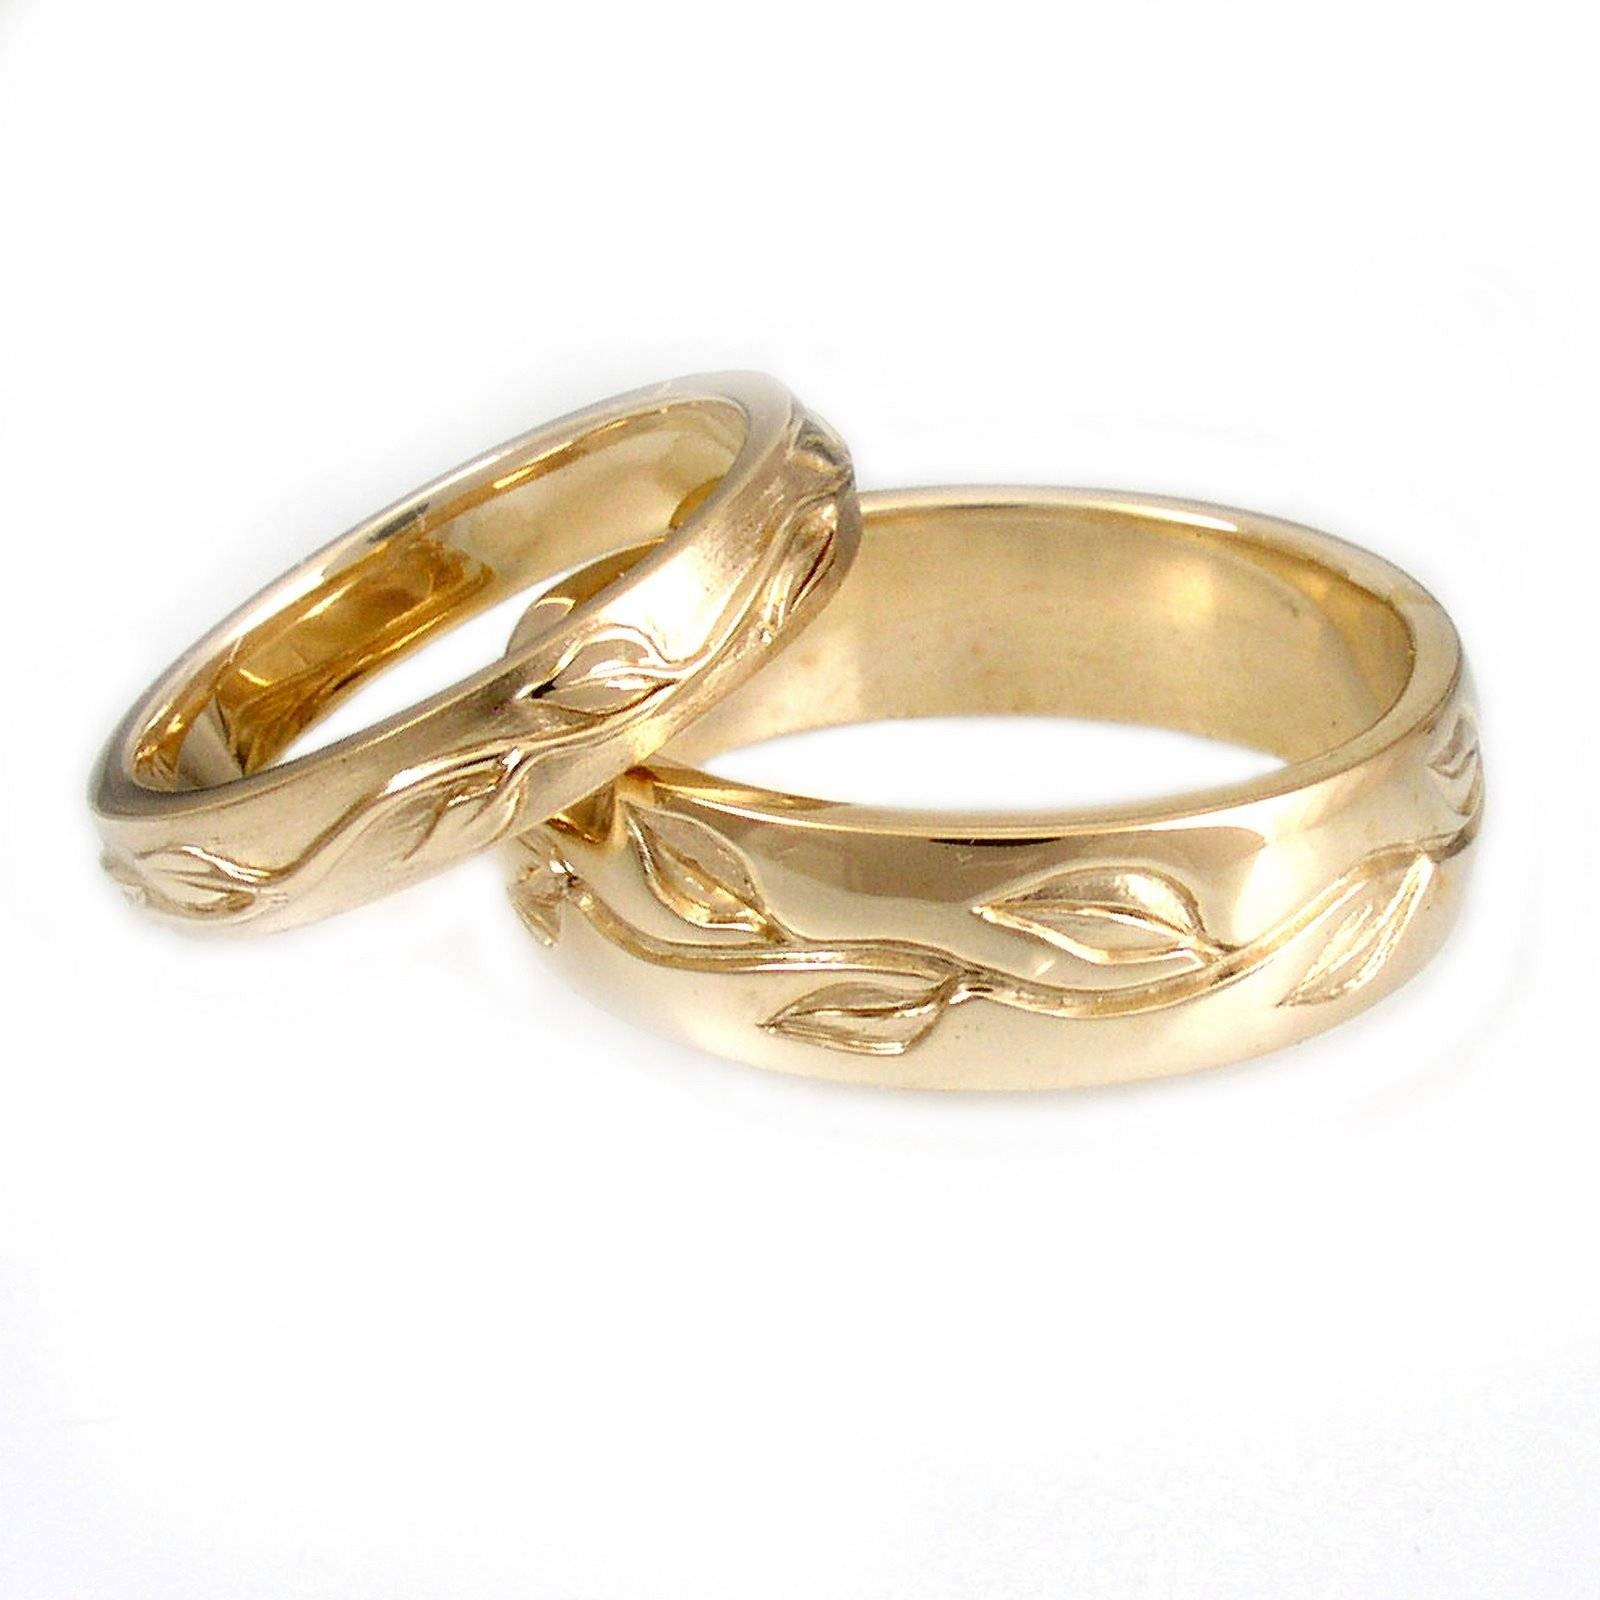 Wedding Rings Ideas: Diamond Leaves Carved Bands His And Hers Within Carved Wedding Rings (View 14 of 15)